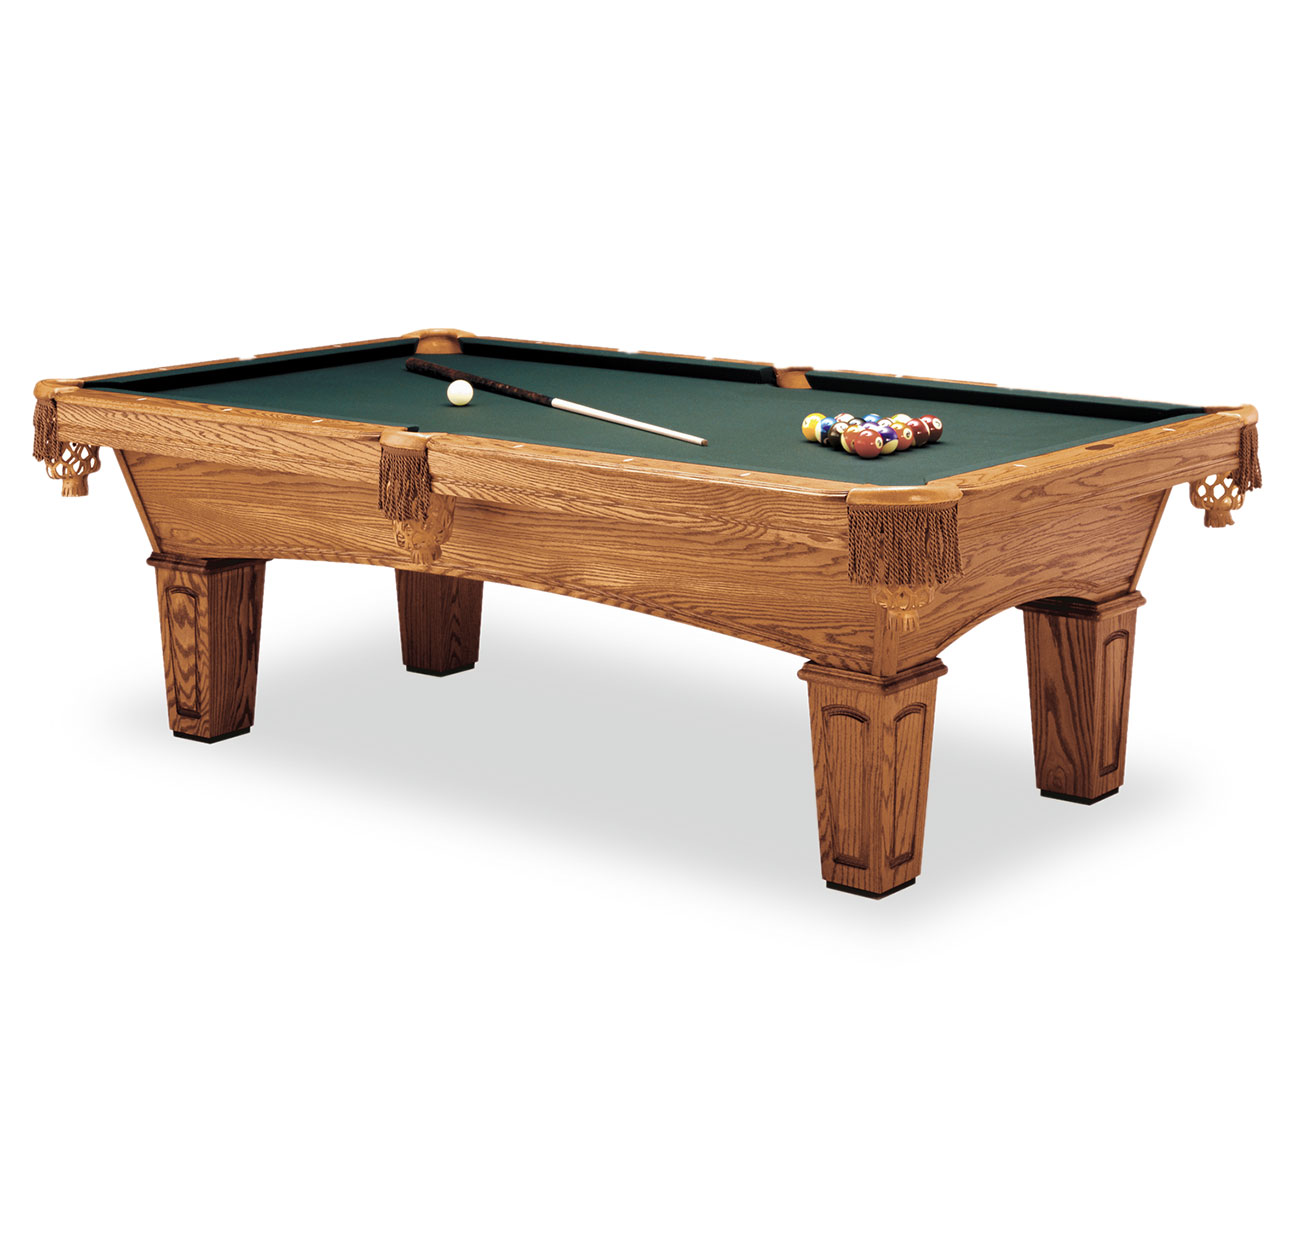 Olhausen augusta pool table shop olhausen pool tables - Pool table images ...